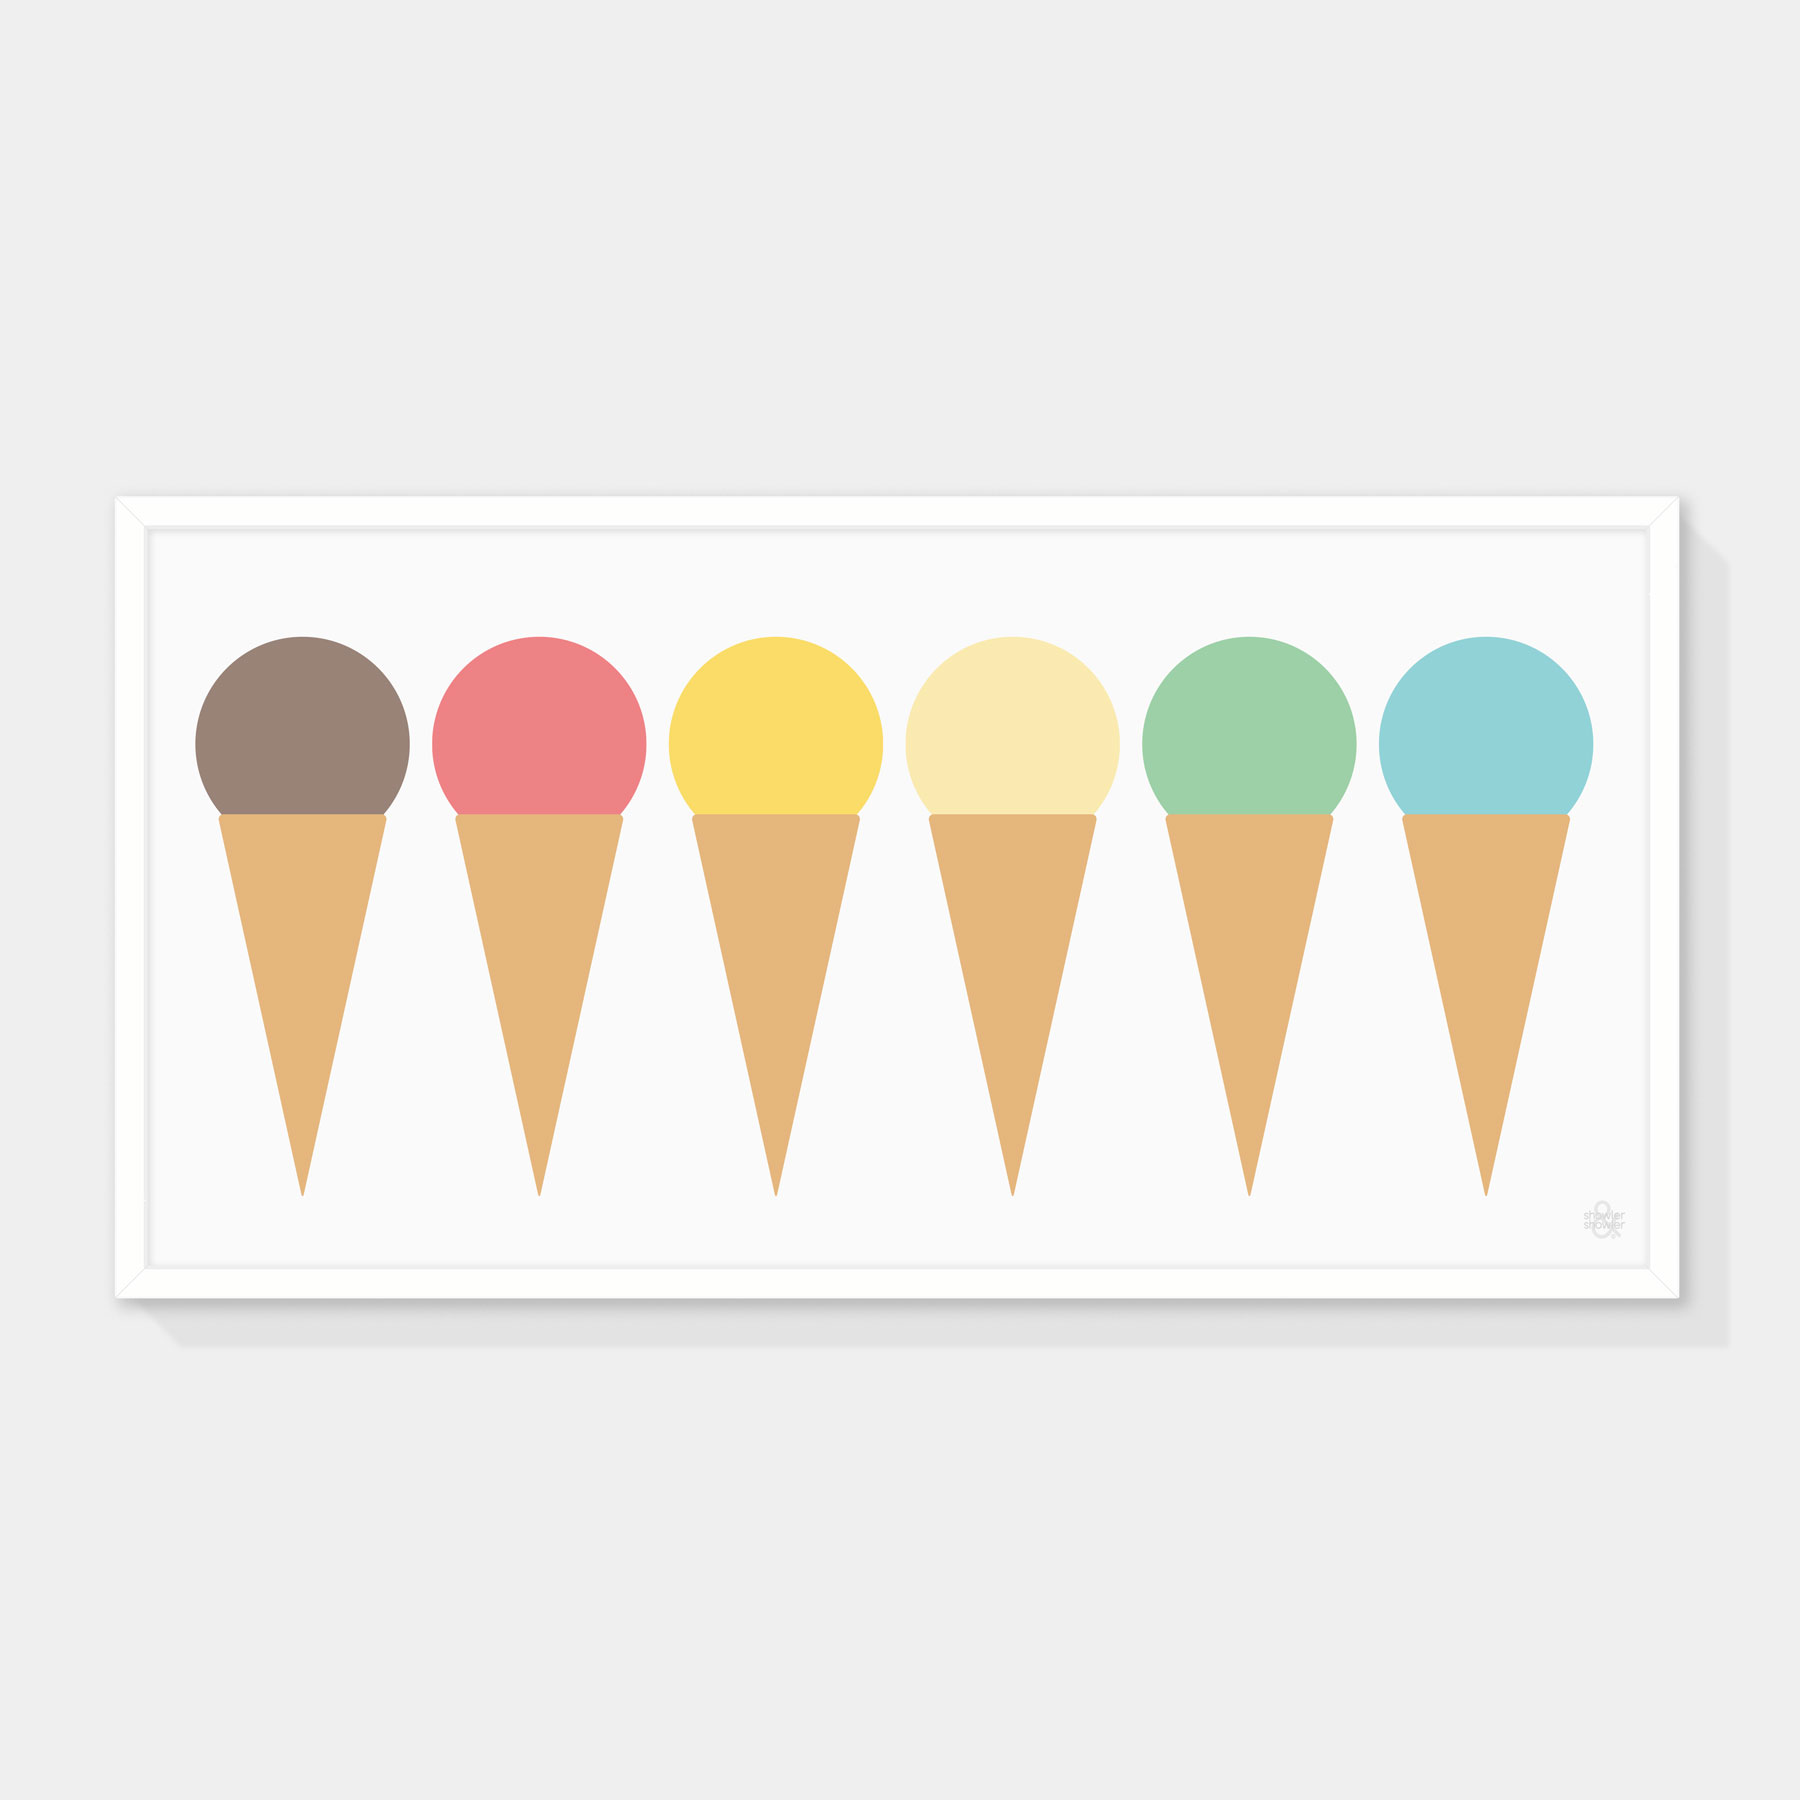 Ice-Cream-Cones-Panorama-Framed.jpg